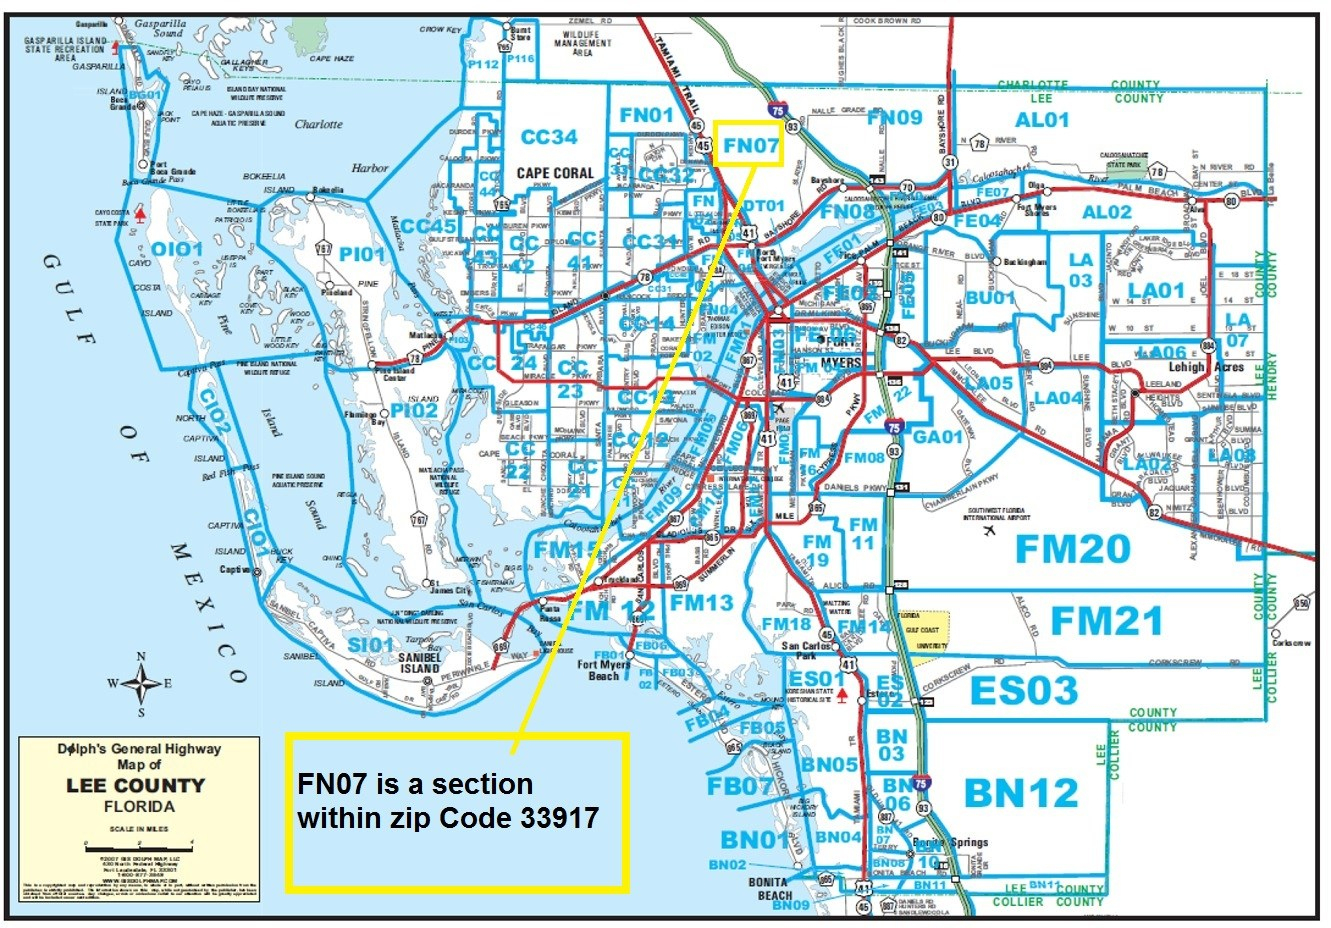 Free Lee County Florida Realtor Map - Sw Florida Real Estate Resources - Mls Listings Florida Map